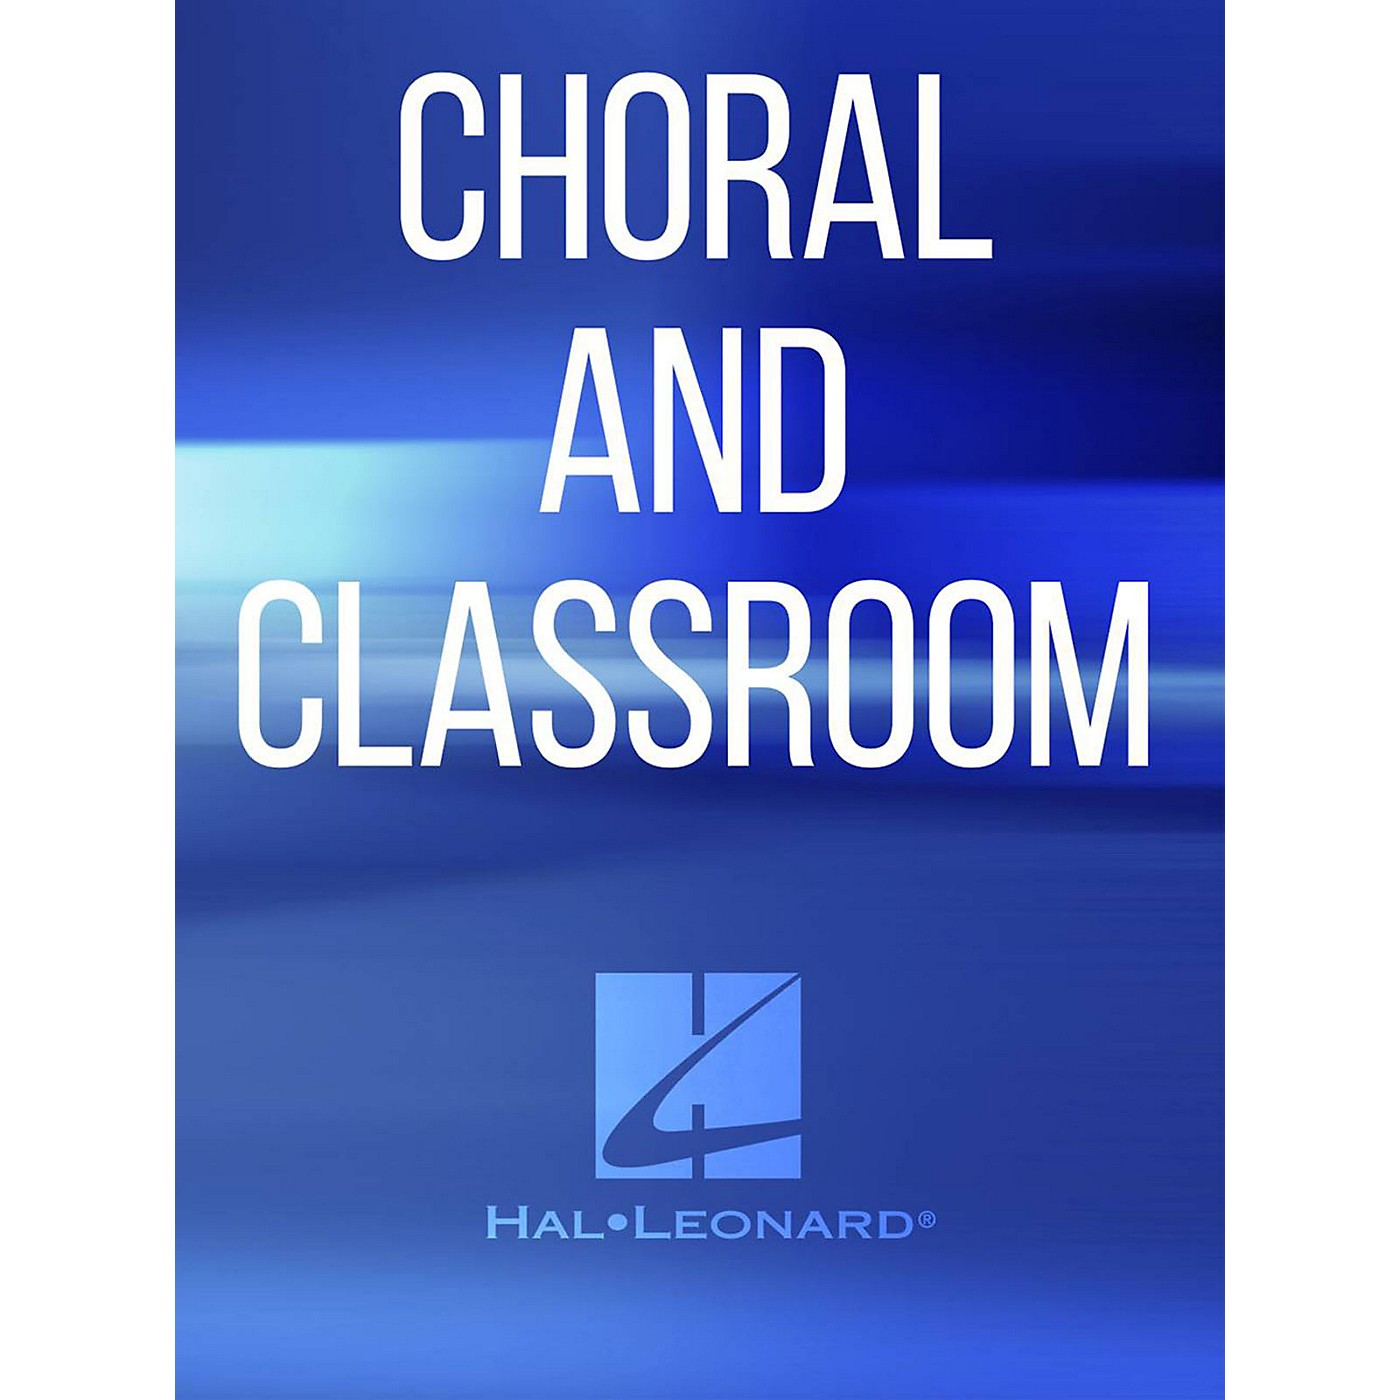 Hal Leonard Christmas Is ([with The Christmas Song (Chestnuts Roasting on an Open Fire)]) 2-Part Arranged by Mac Huff thumbnail